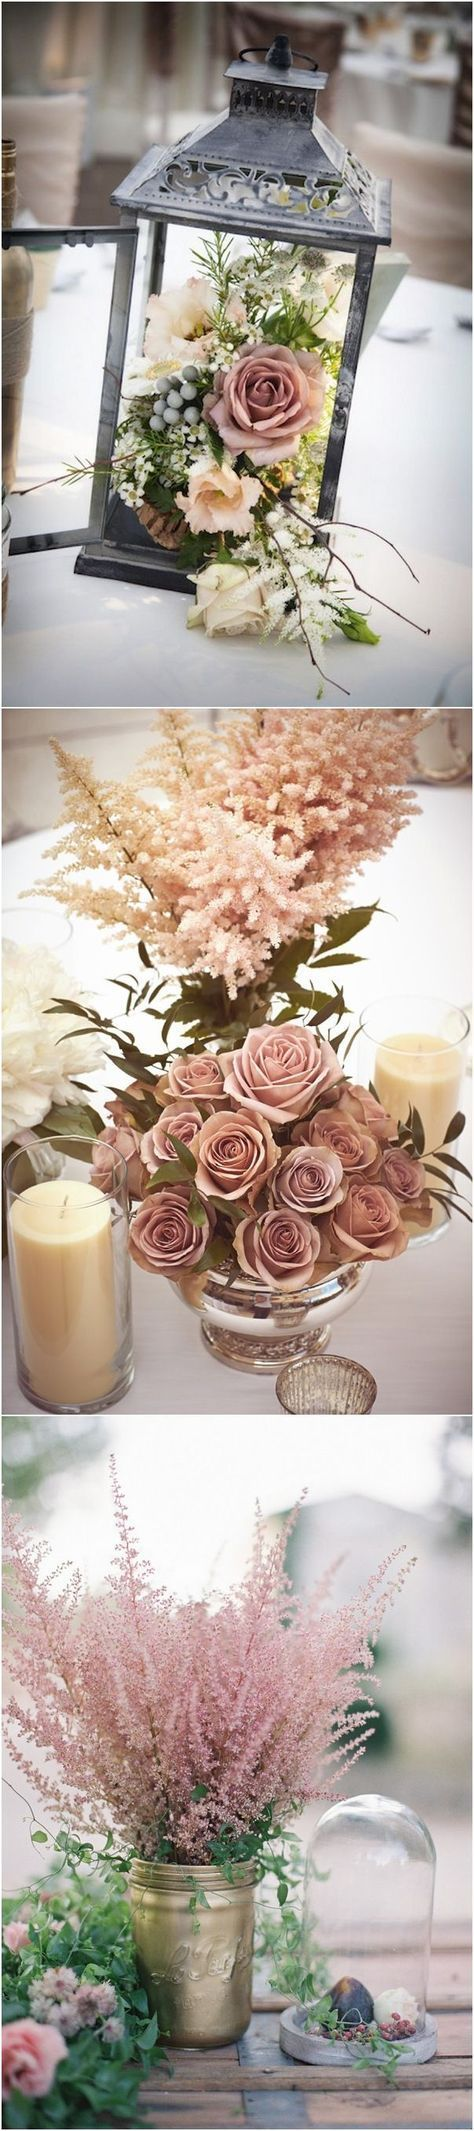 50th wedding decorations ideas   best th anniversary images on Pinterest  Table centers th